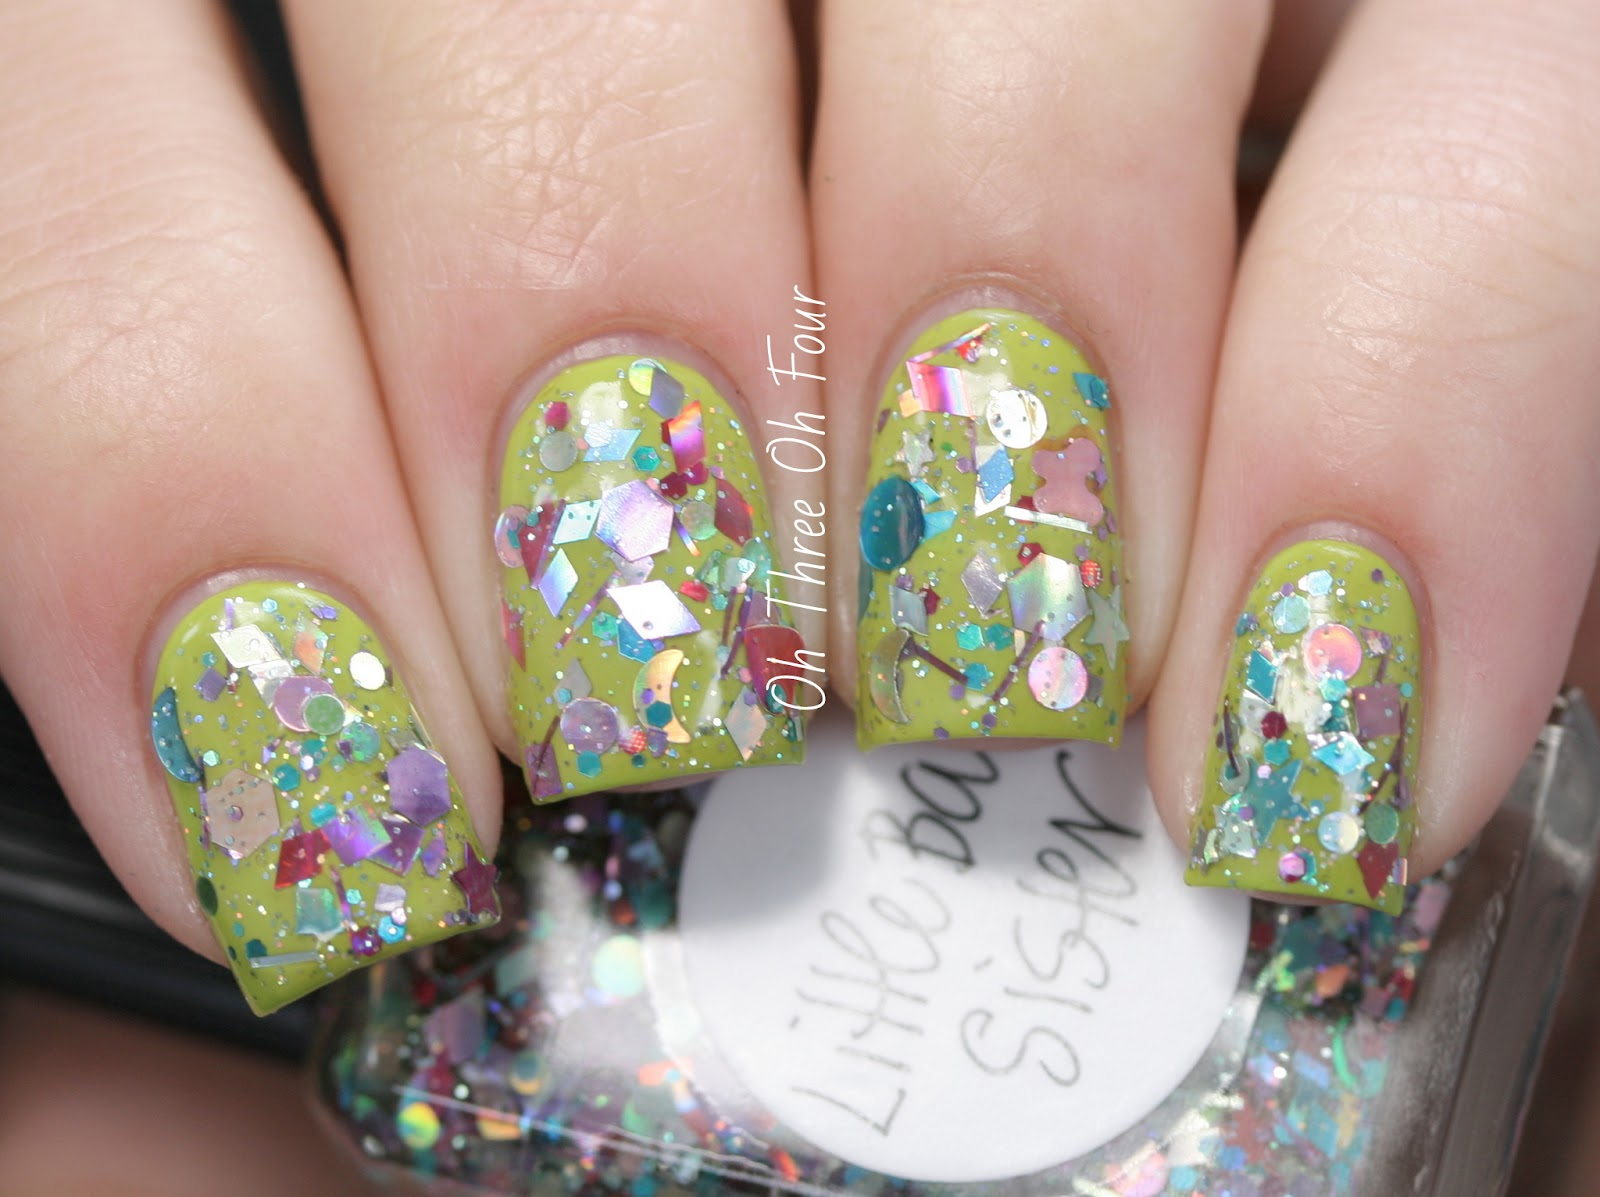 Lynnderella Little Baby Sister swatch